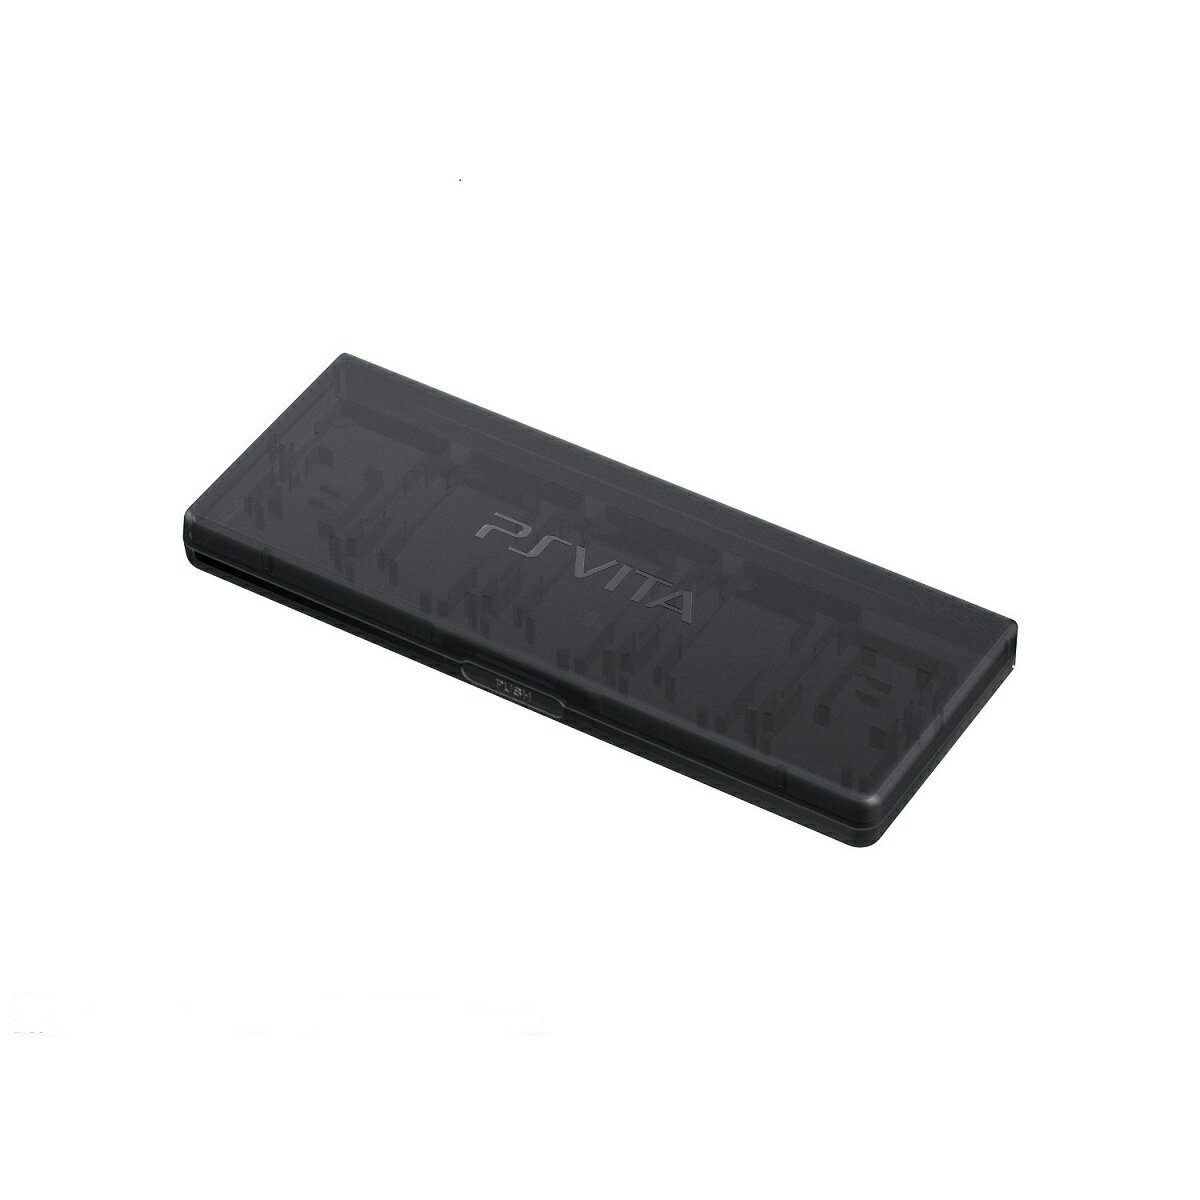 PS Vita card case (PCHJ-15002)